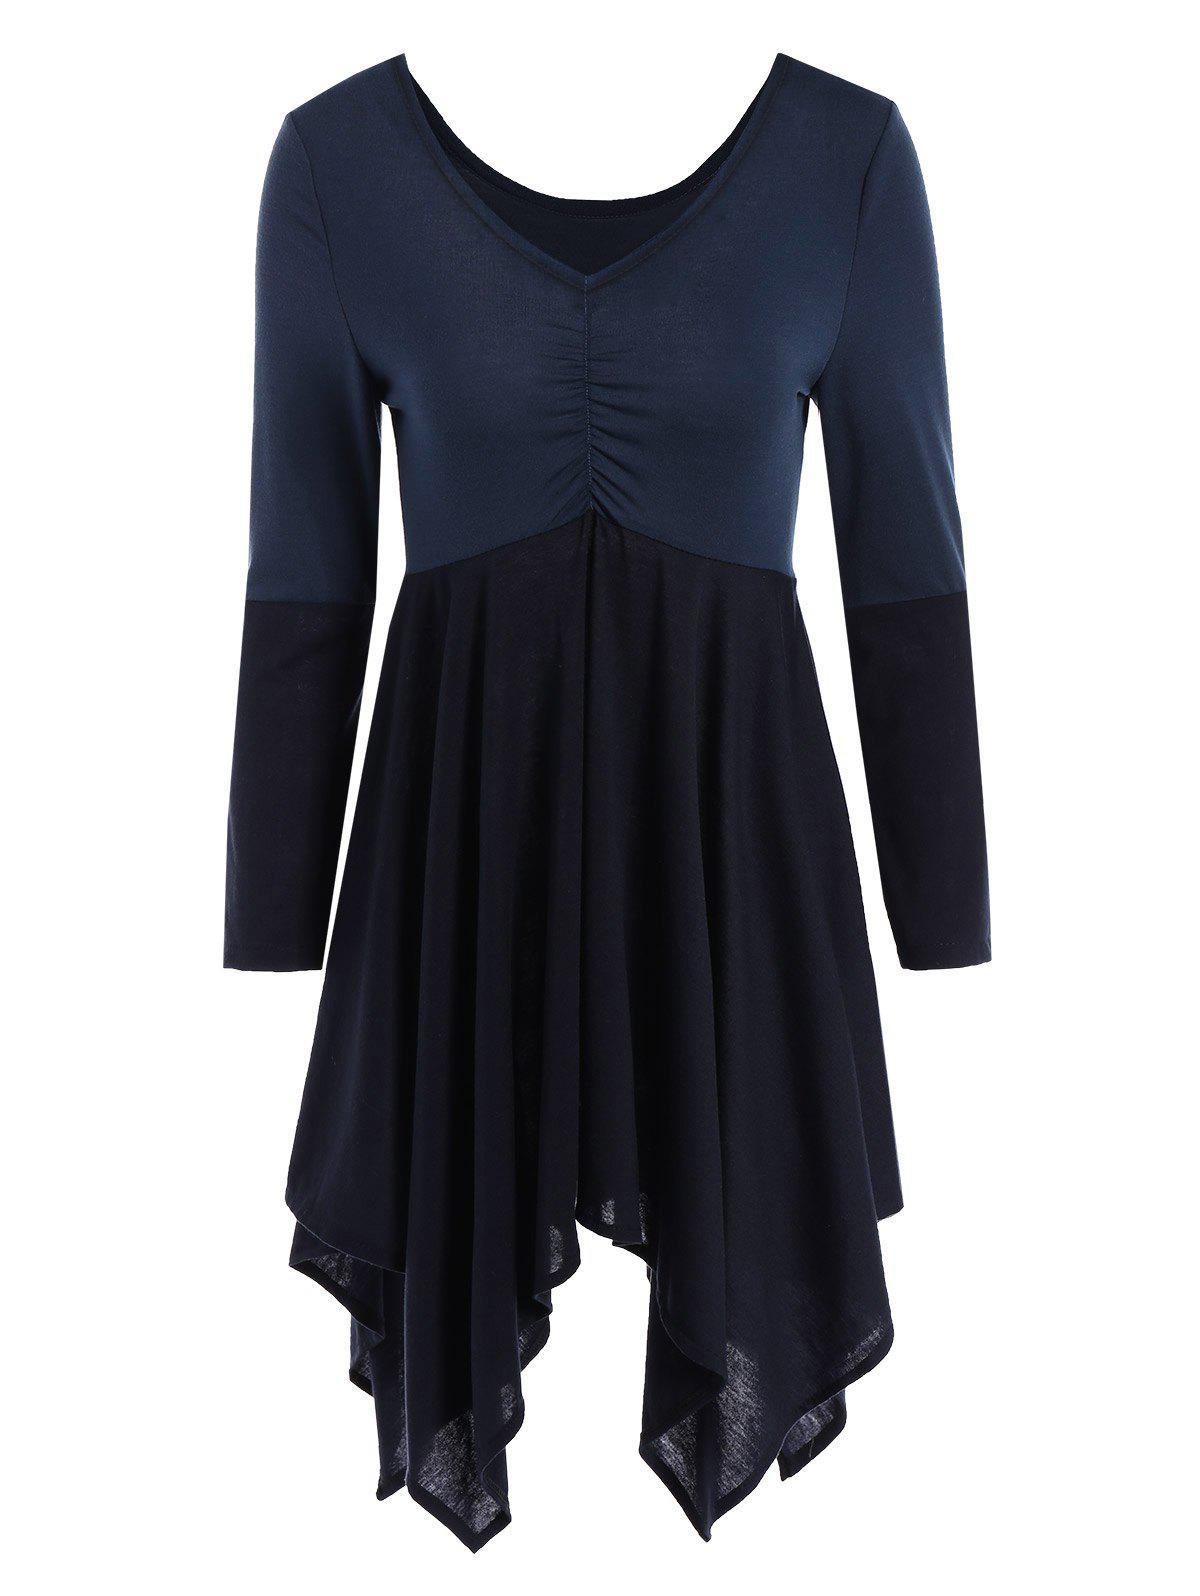 V Neck Long Sleeve Asymmetric Mini Dress - PURPLISH BLUE XL